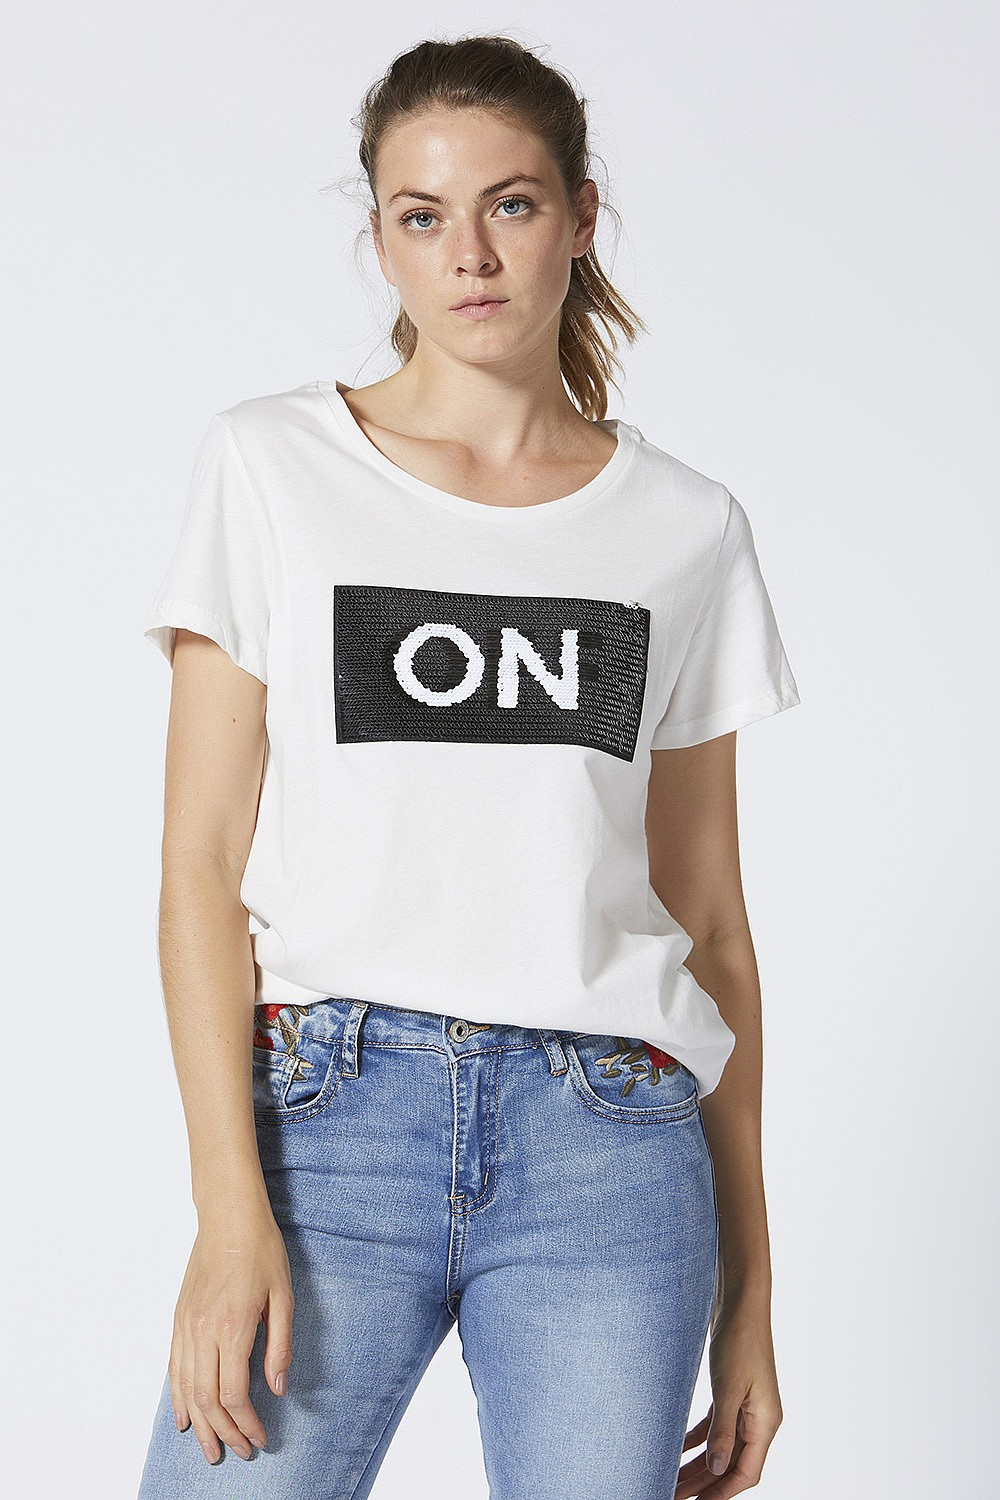 On and Off White T-Shirt